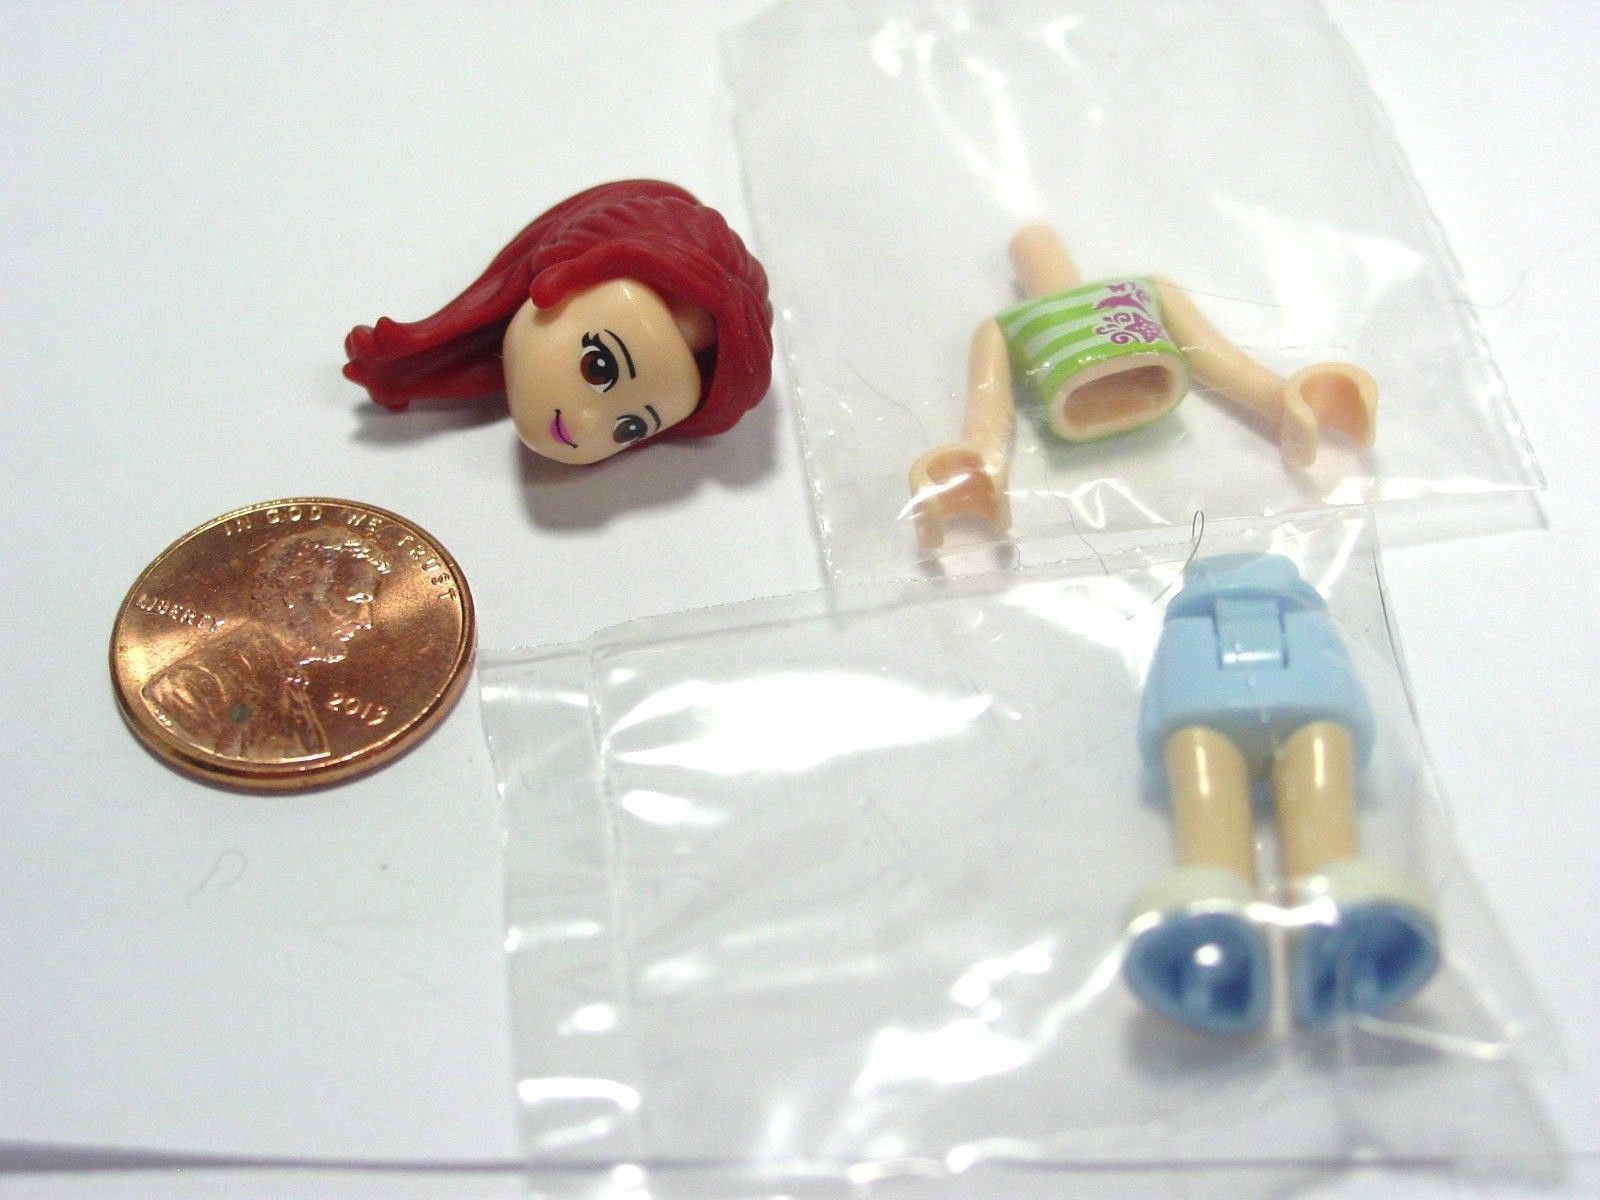 LEGO Mia Minifigure from 41015 Dolphin Cruiser Friends set